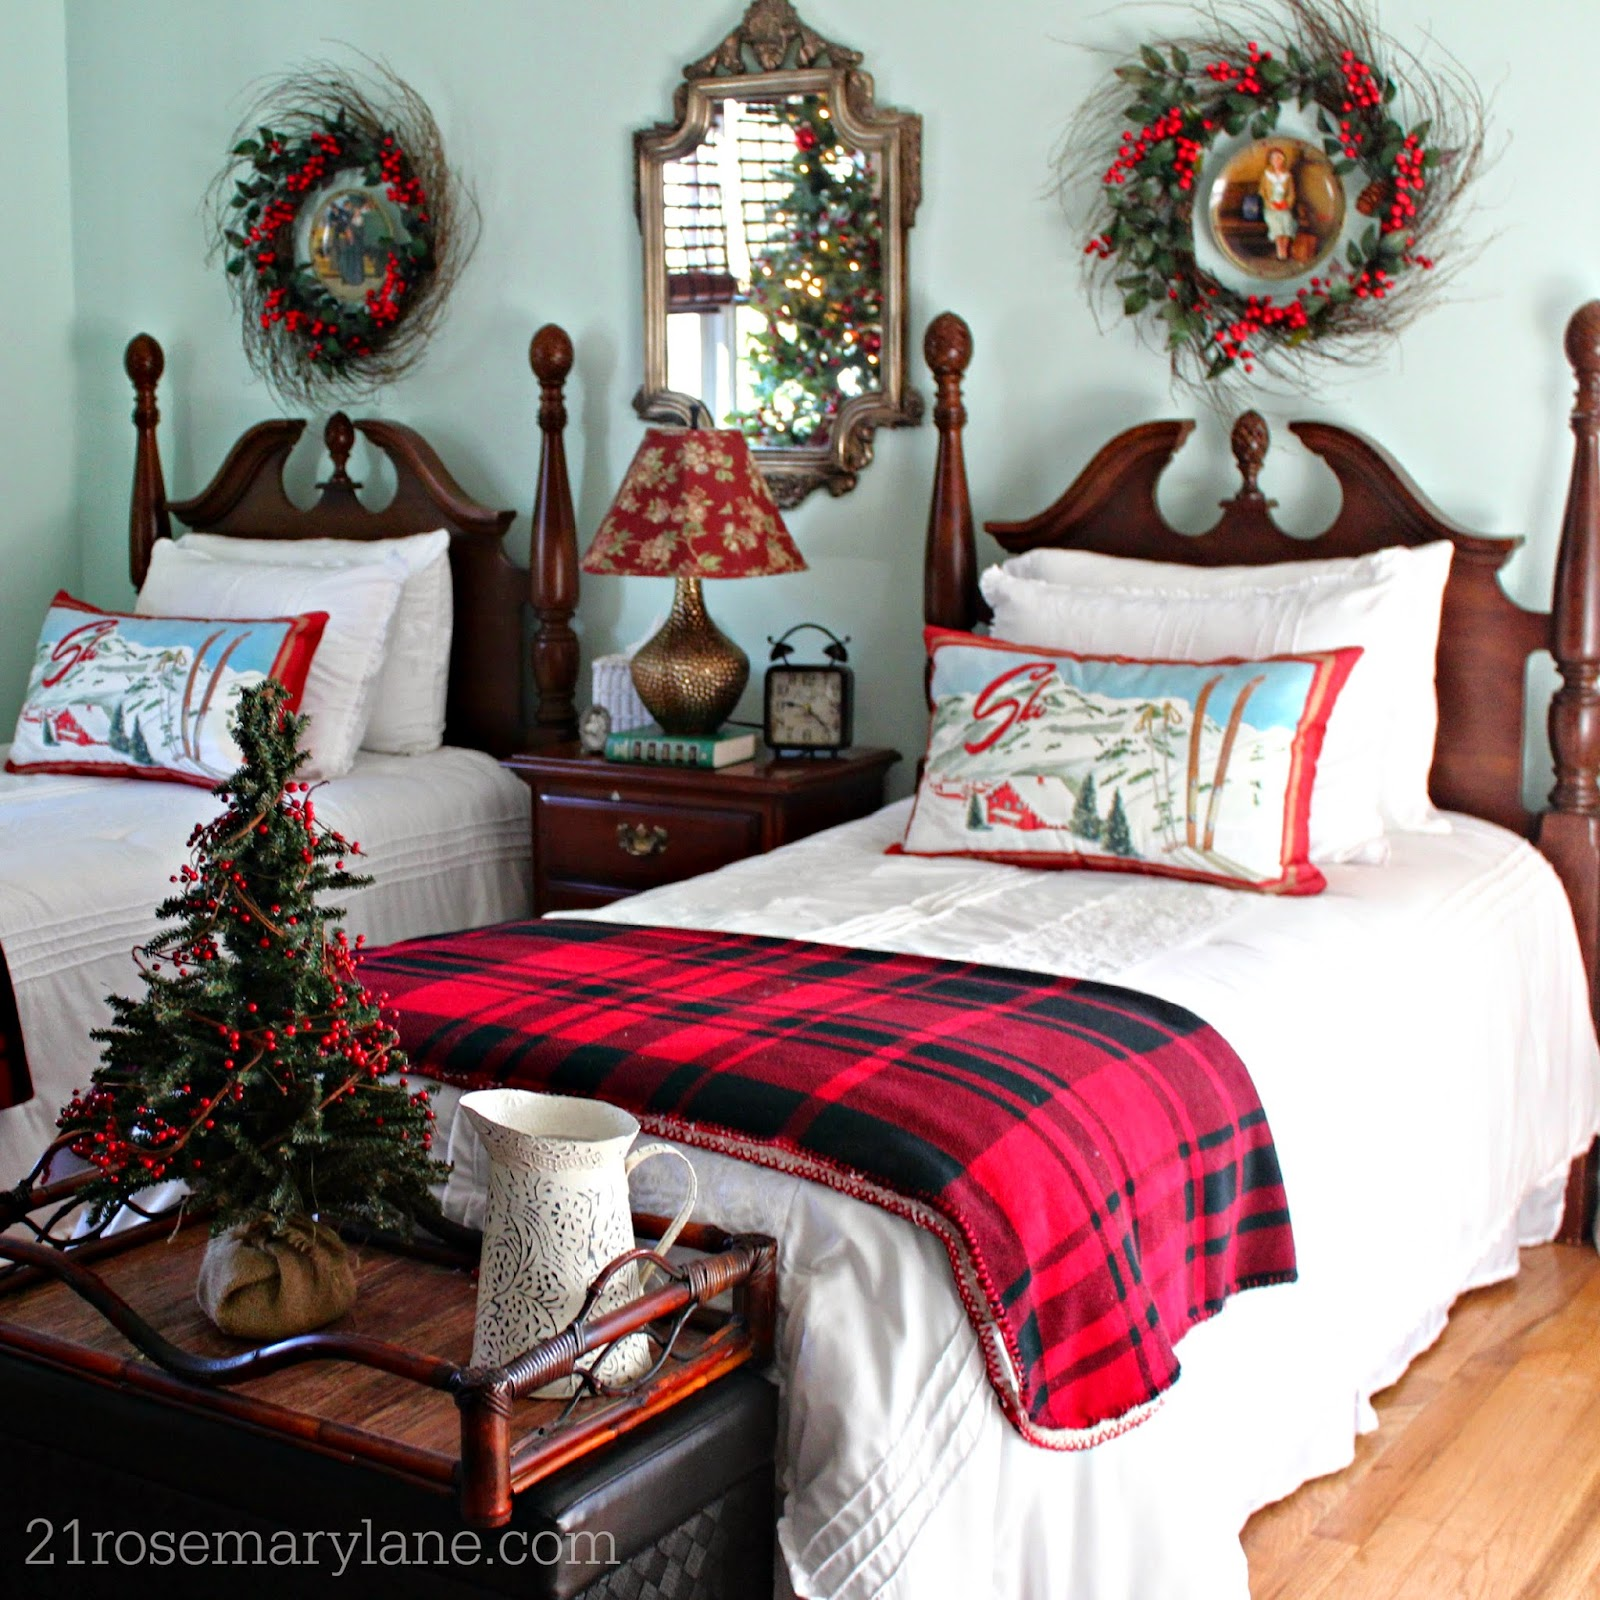 21 Rosemary Lane: Cozy Ski Chalet Themed Guest Bedroom For